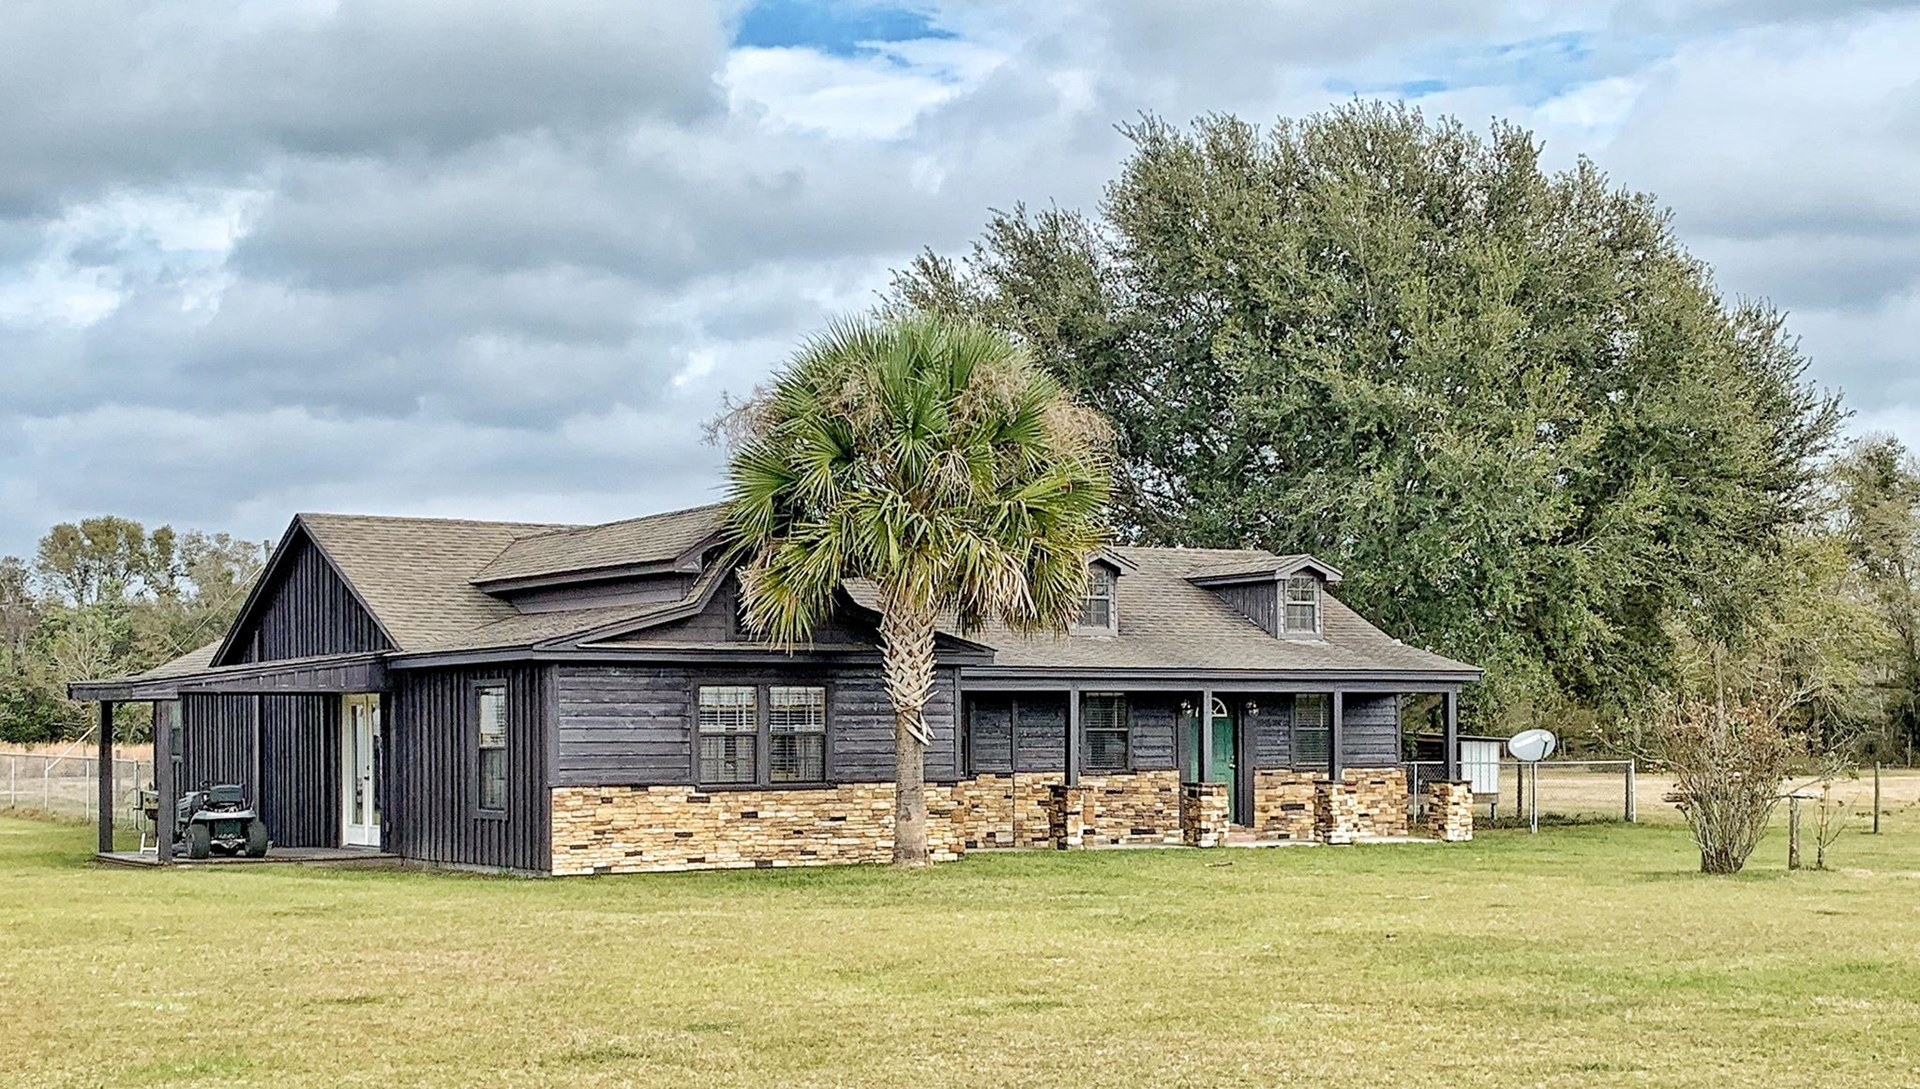 Sold Equine Property With Home And Barn For Sale Trenton Fl